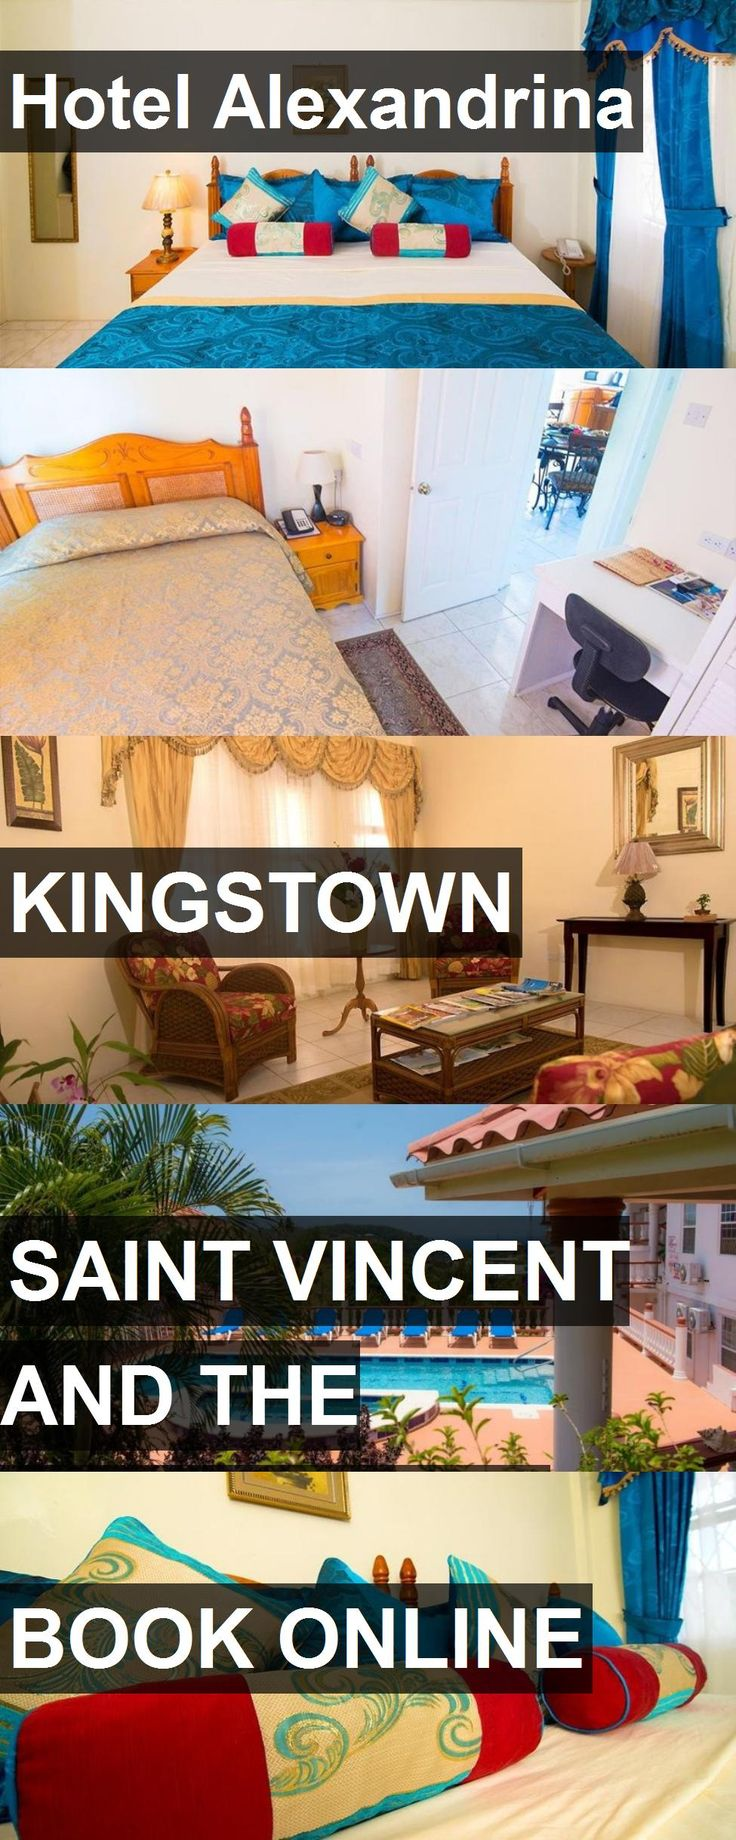 Hotel Alexandrina in Kingstown, Saint Vincent and The Grenadines. For more information, photos, reviews and best prices please follow the link. #SaintVincentandTheGrenadines #Kingstown #travel #vacation #hotel